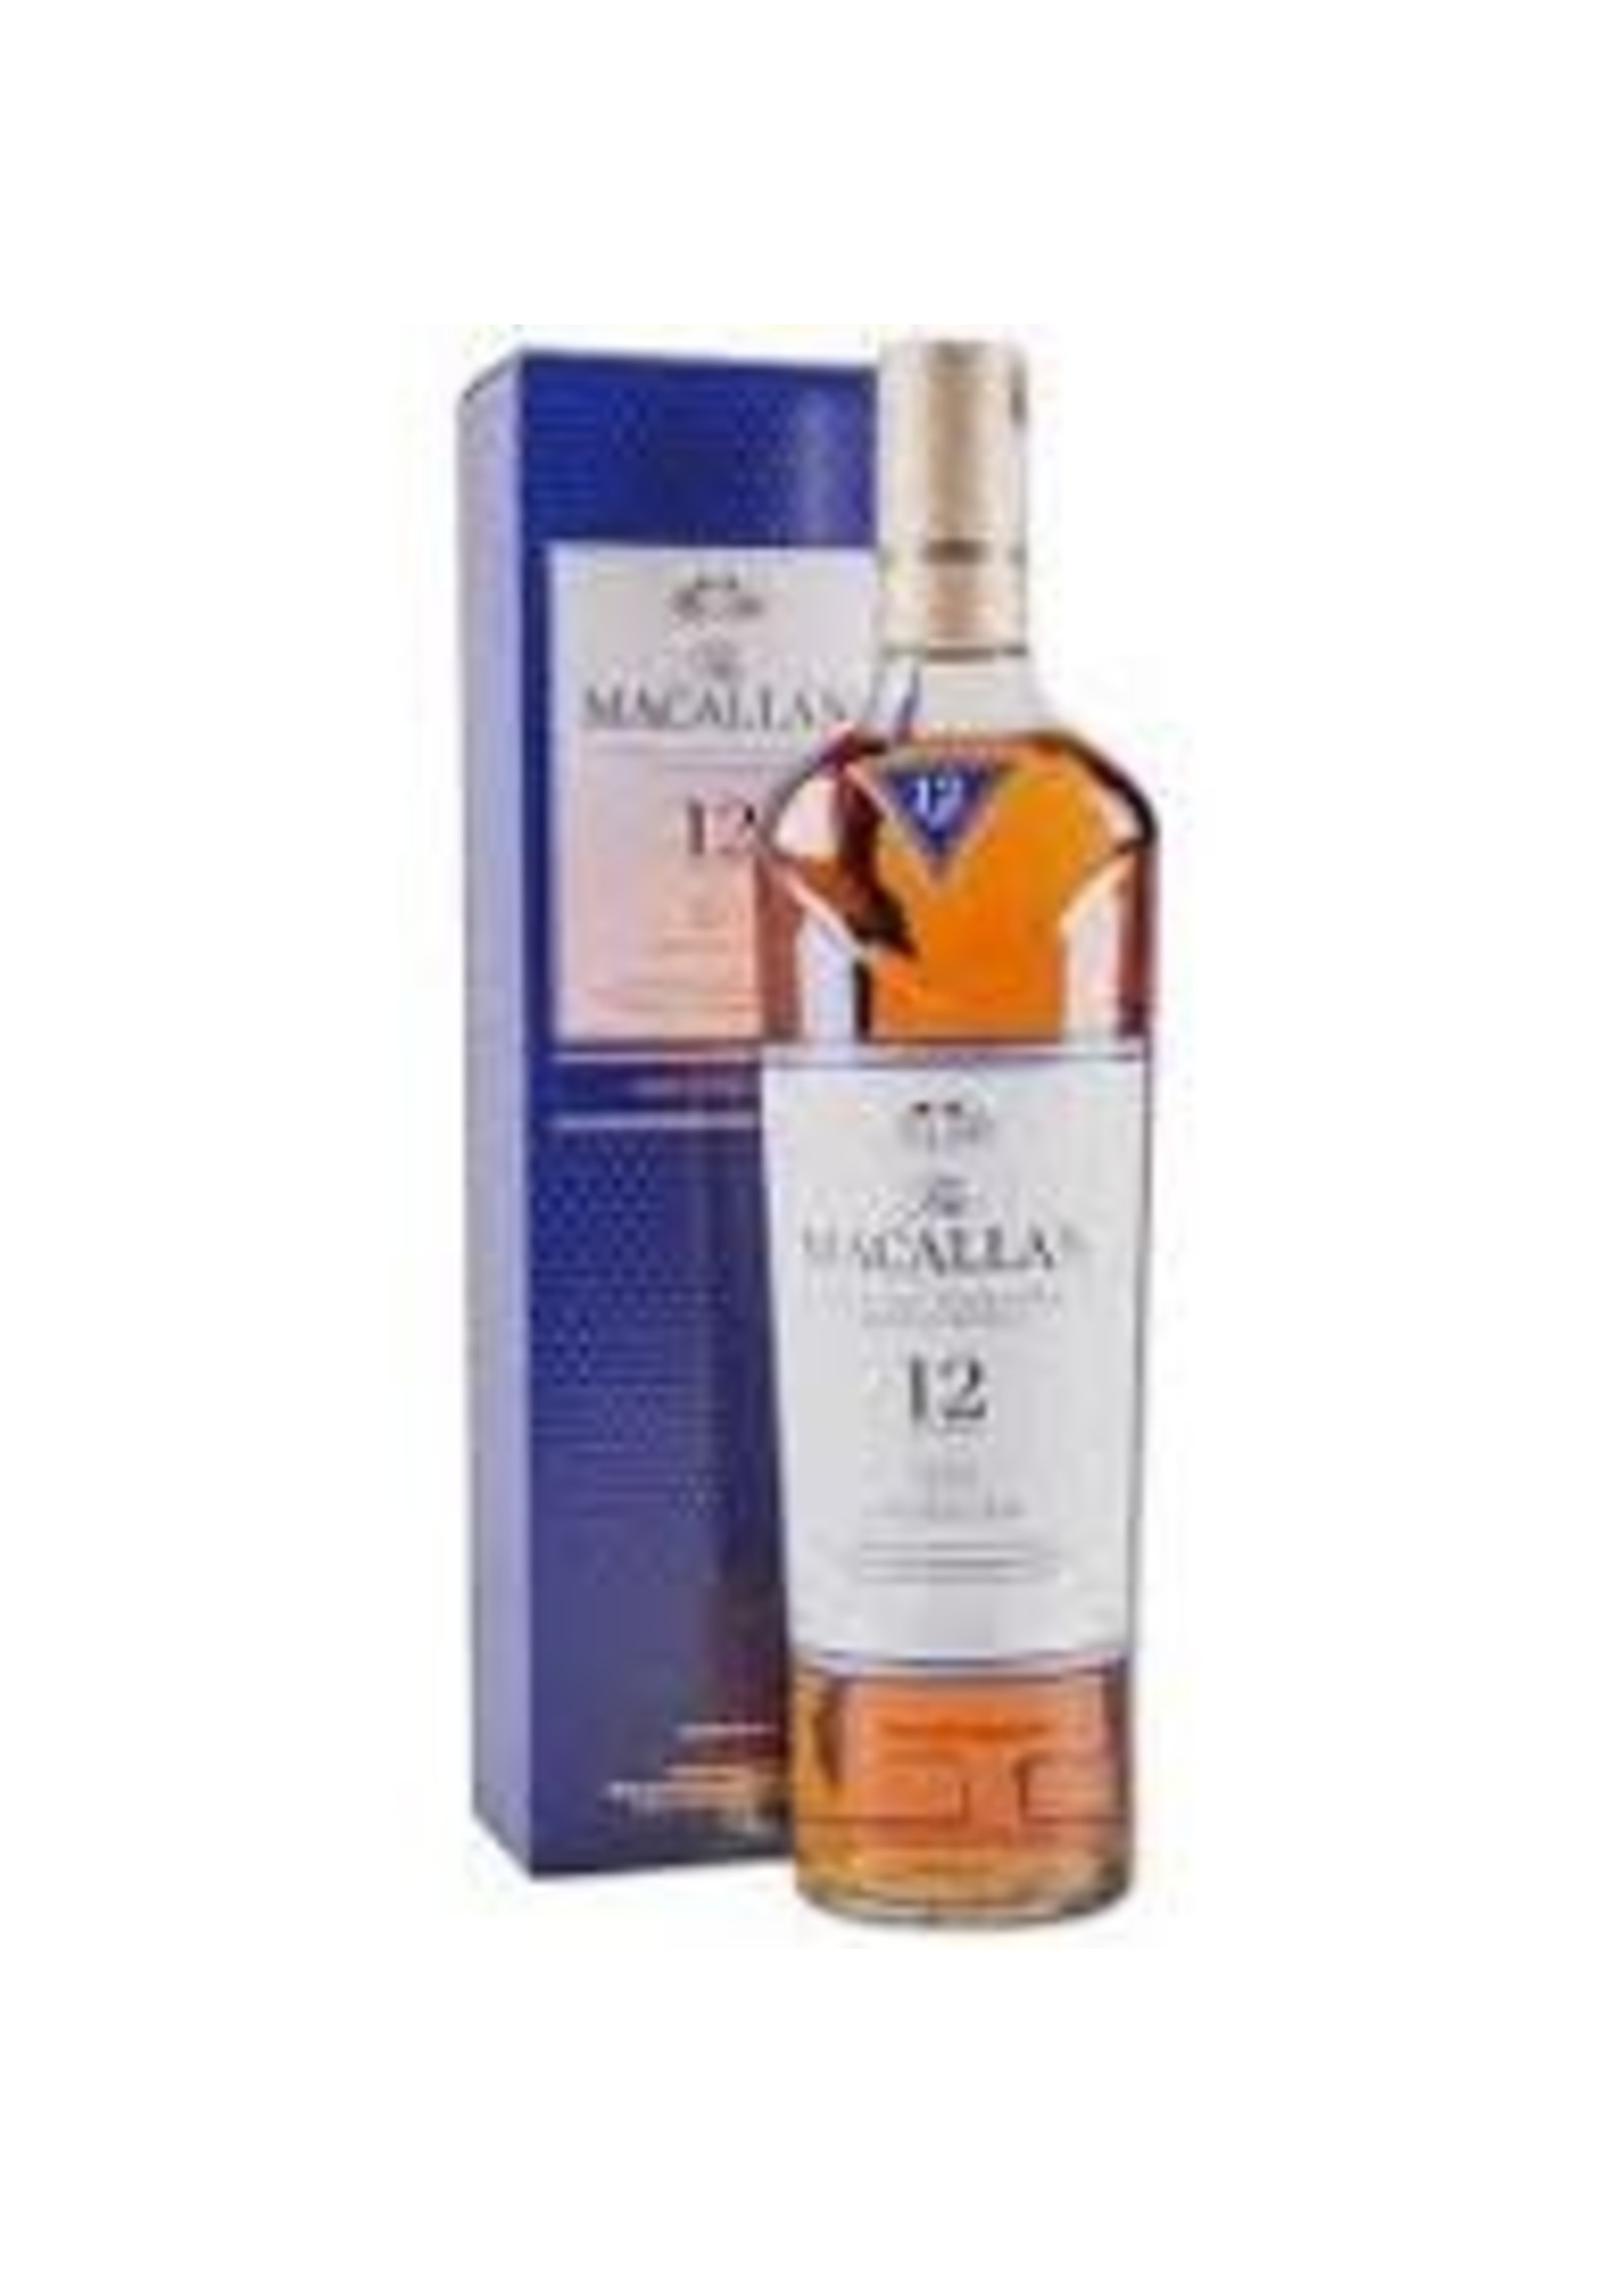 The Macallan Scotch 12 Year Double Cask 86 Proof 750ml